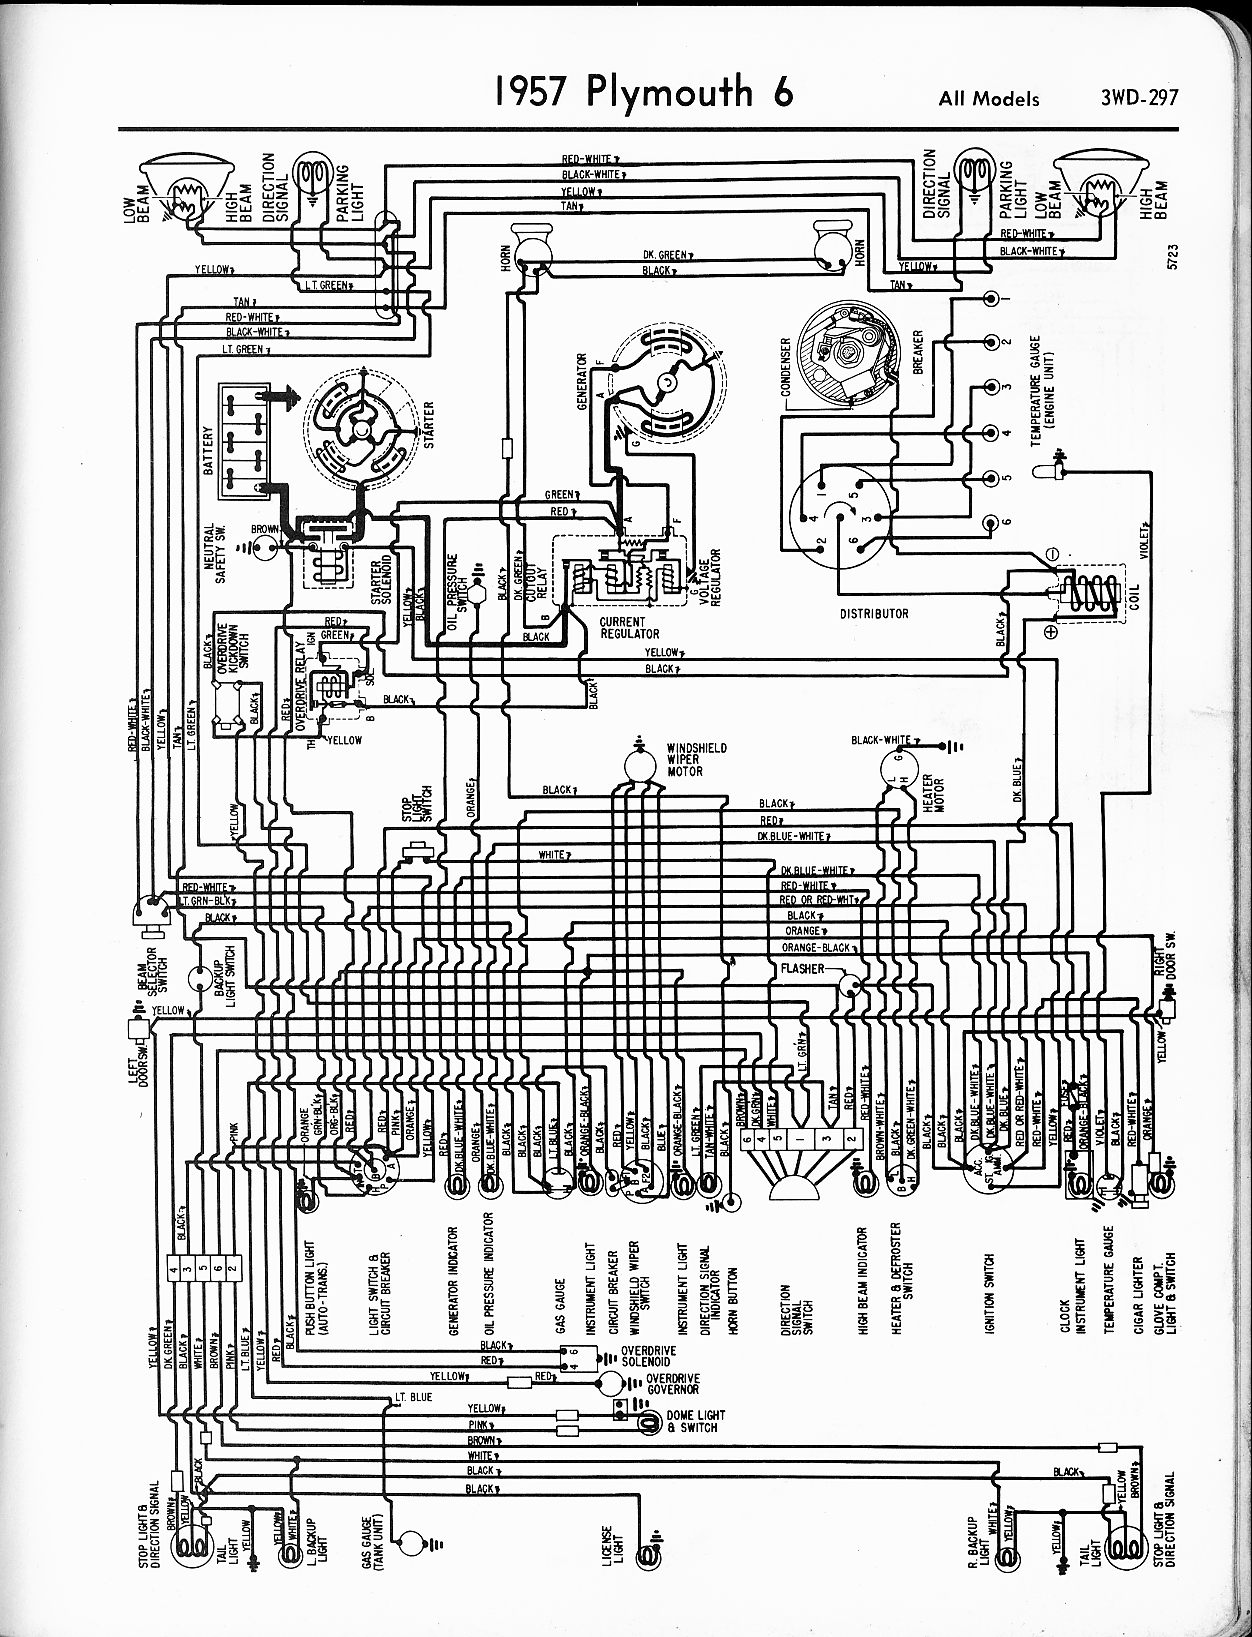 1975 Plymouth Valiant Wiring Diagram Free Download 1973 Chevrolet Vega 1956 1965 The Old Car Manual Project Rh Oldcarmanualproject Com Pontiac Firebird Chevy